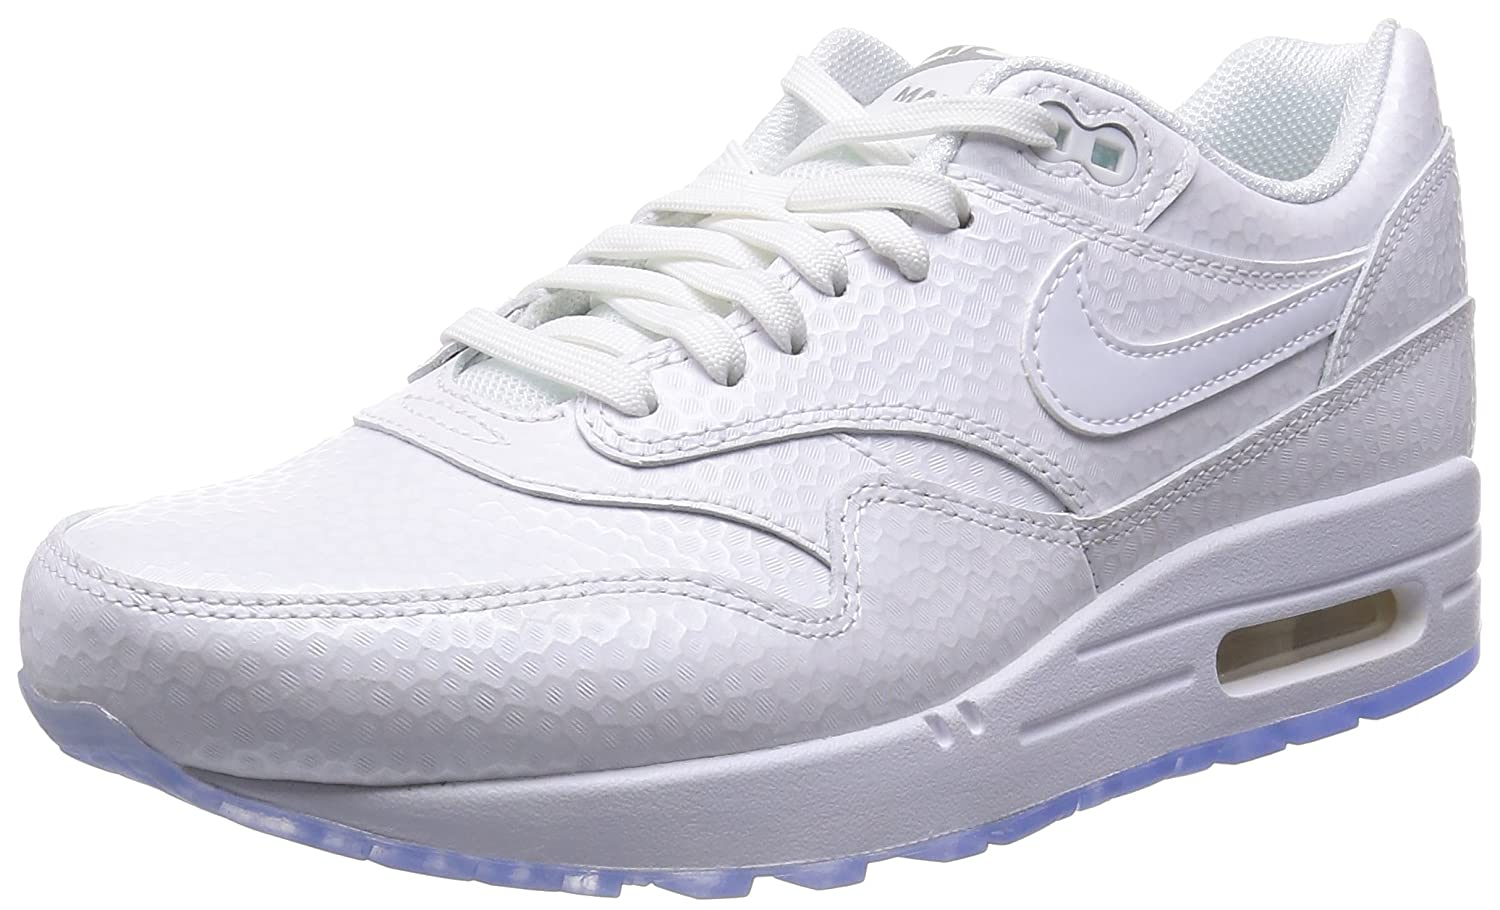 outlet store 100% authentic uk store Nike Air Max 1 PRM Women's Running Shoes